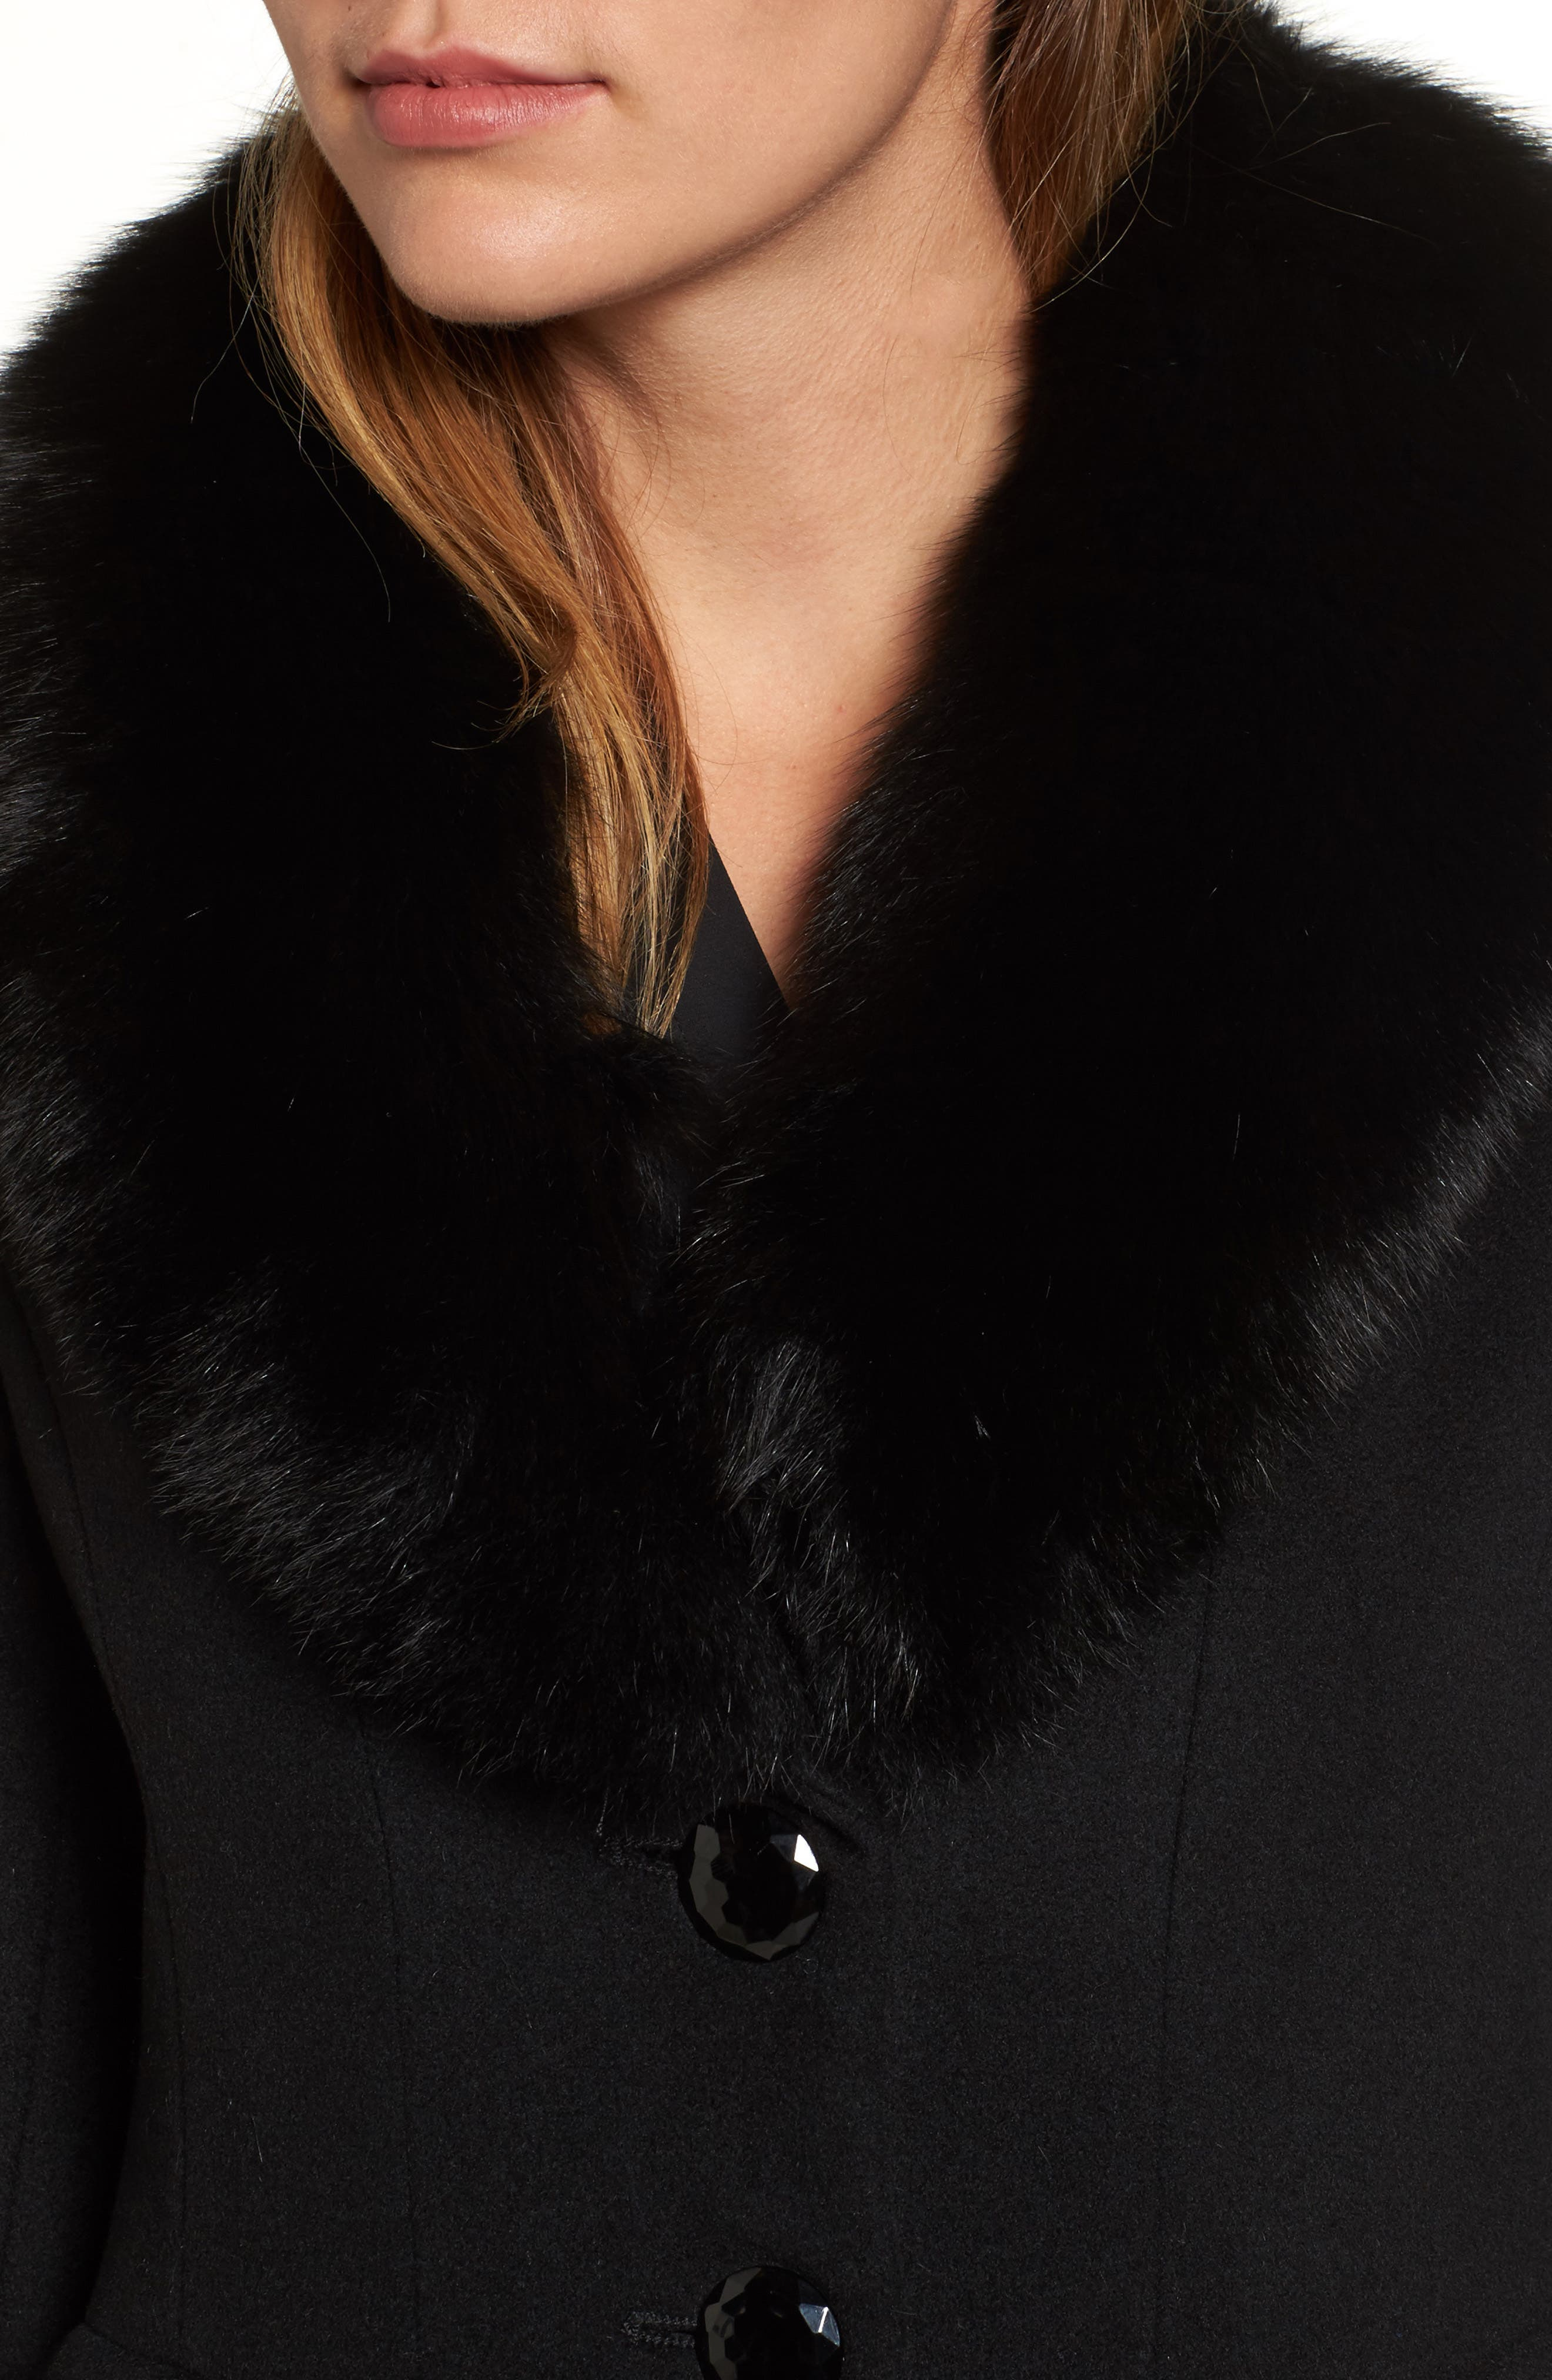 Couture Long Wool Blend Coat with Genuine Fox Fur Collar,                             Alternate thumbnail 4, color,                             Black